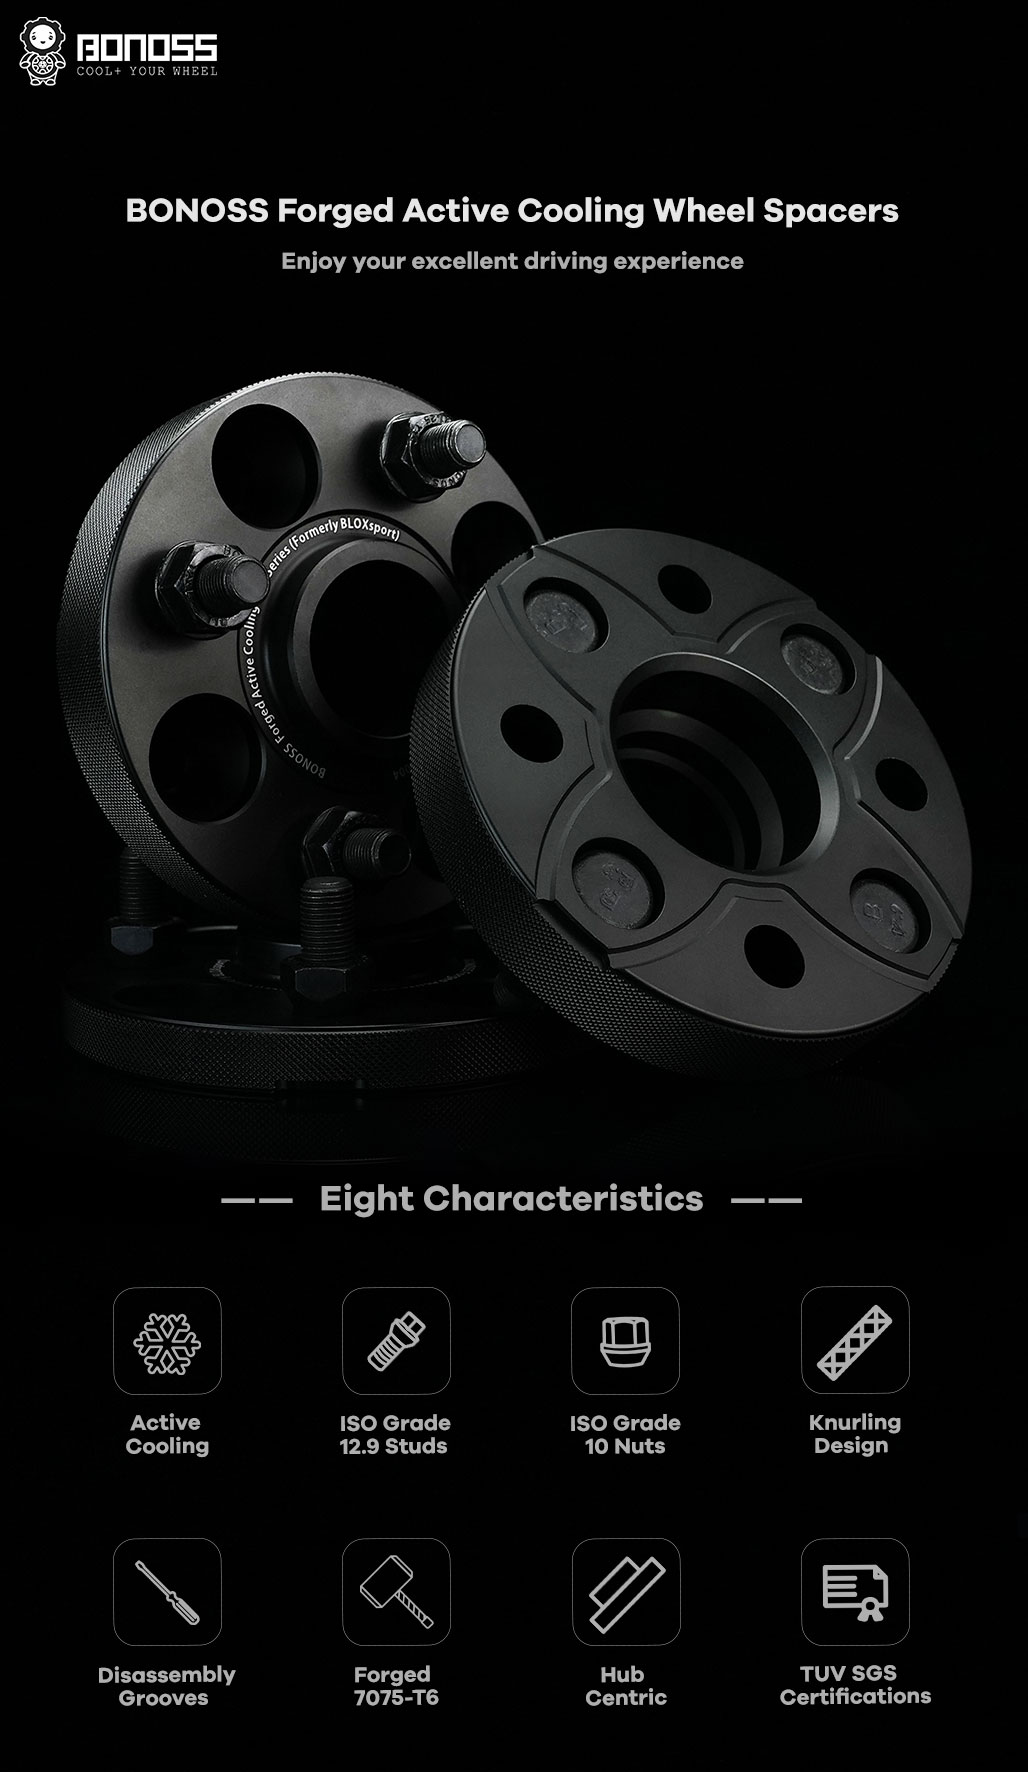 BONOSS Forged Active Cooling Hubcentric Wheel Spacers 4 Lug Wheel Adapters Wheel ET Spacers AL7075-T6